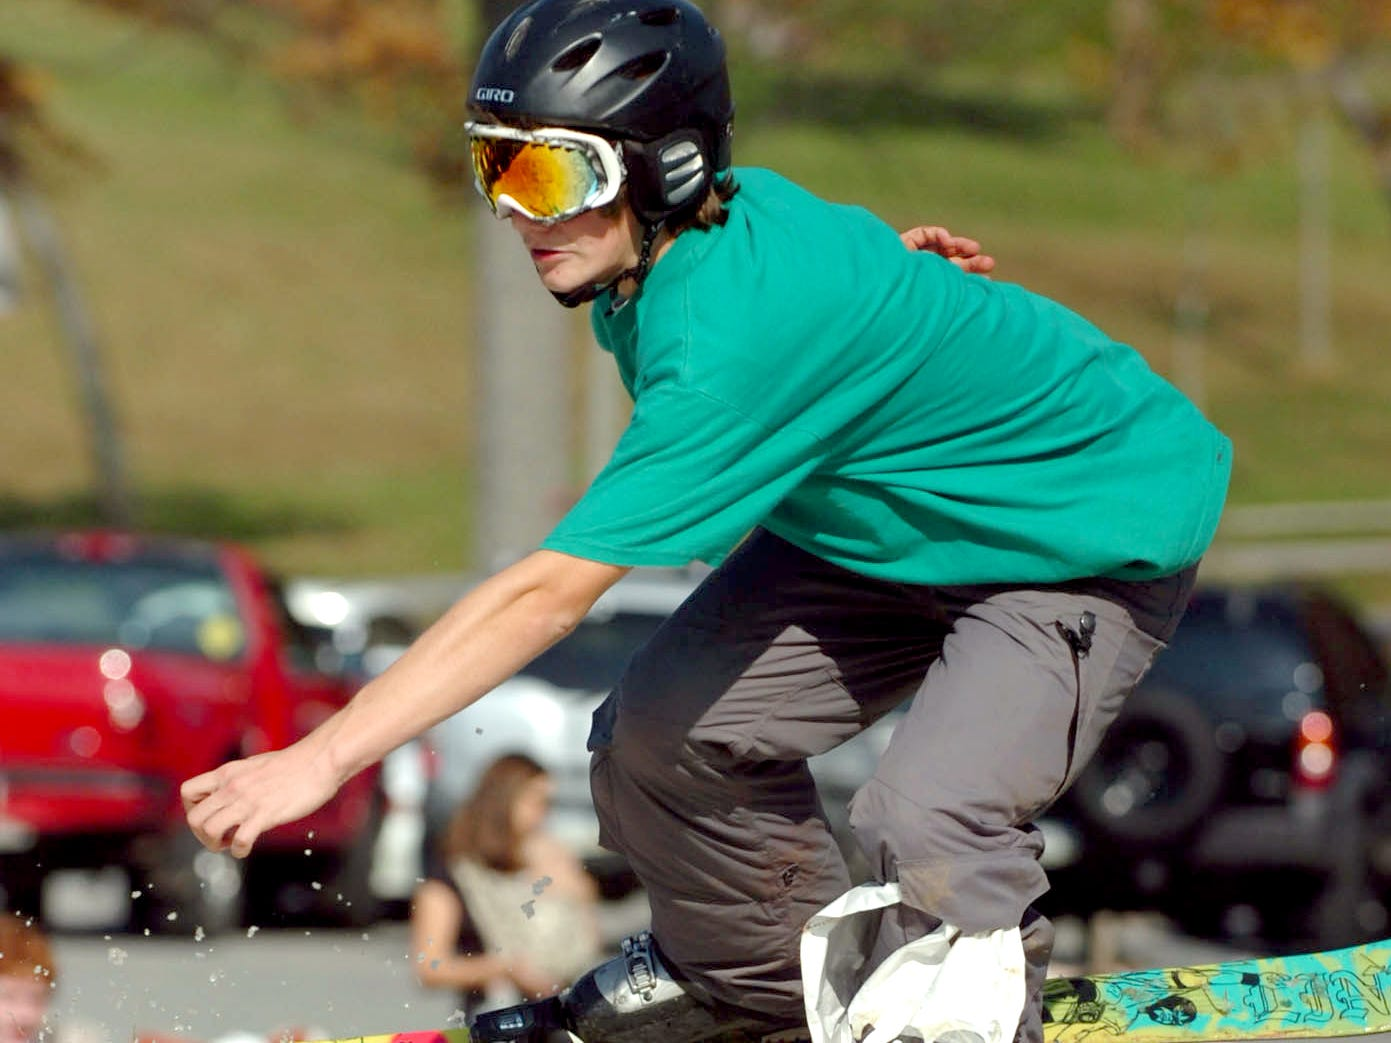 Devon Shumaker, 15, of Dillsburg takes to the air during a warm weather competition at Ski Roundtop November 1, 2008.